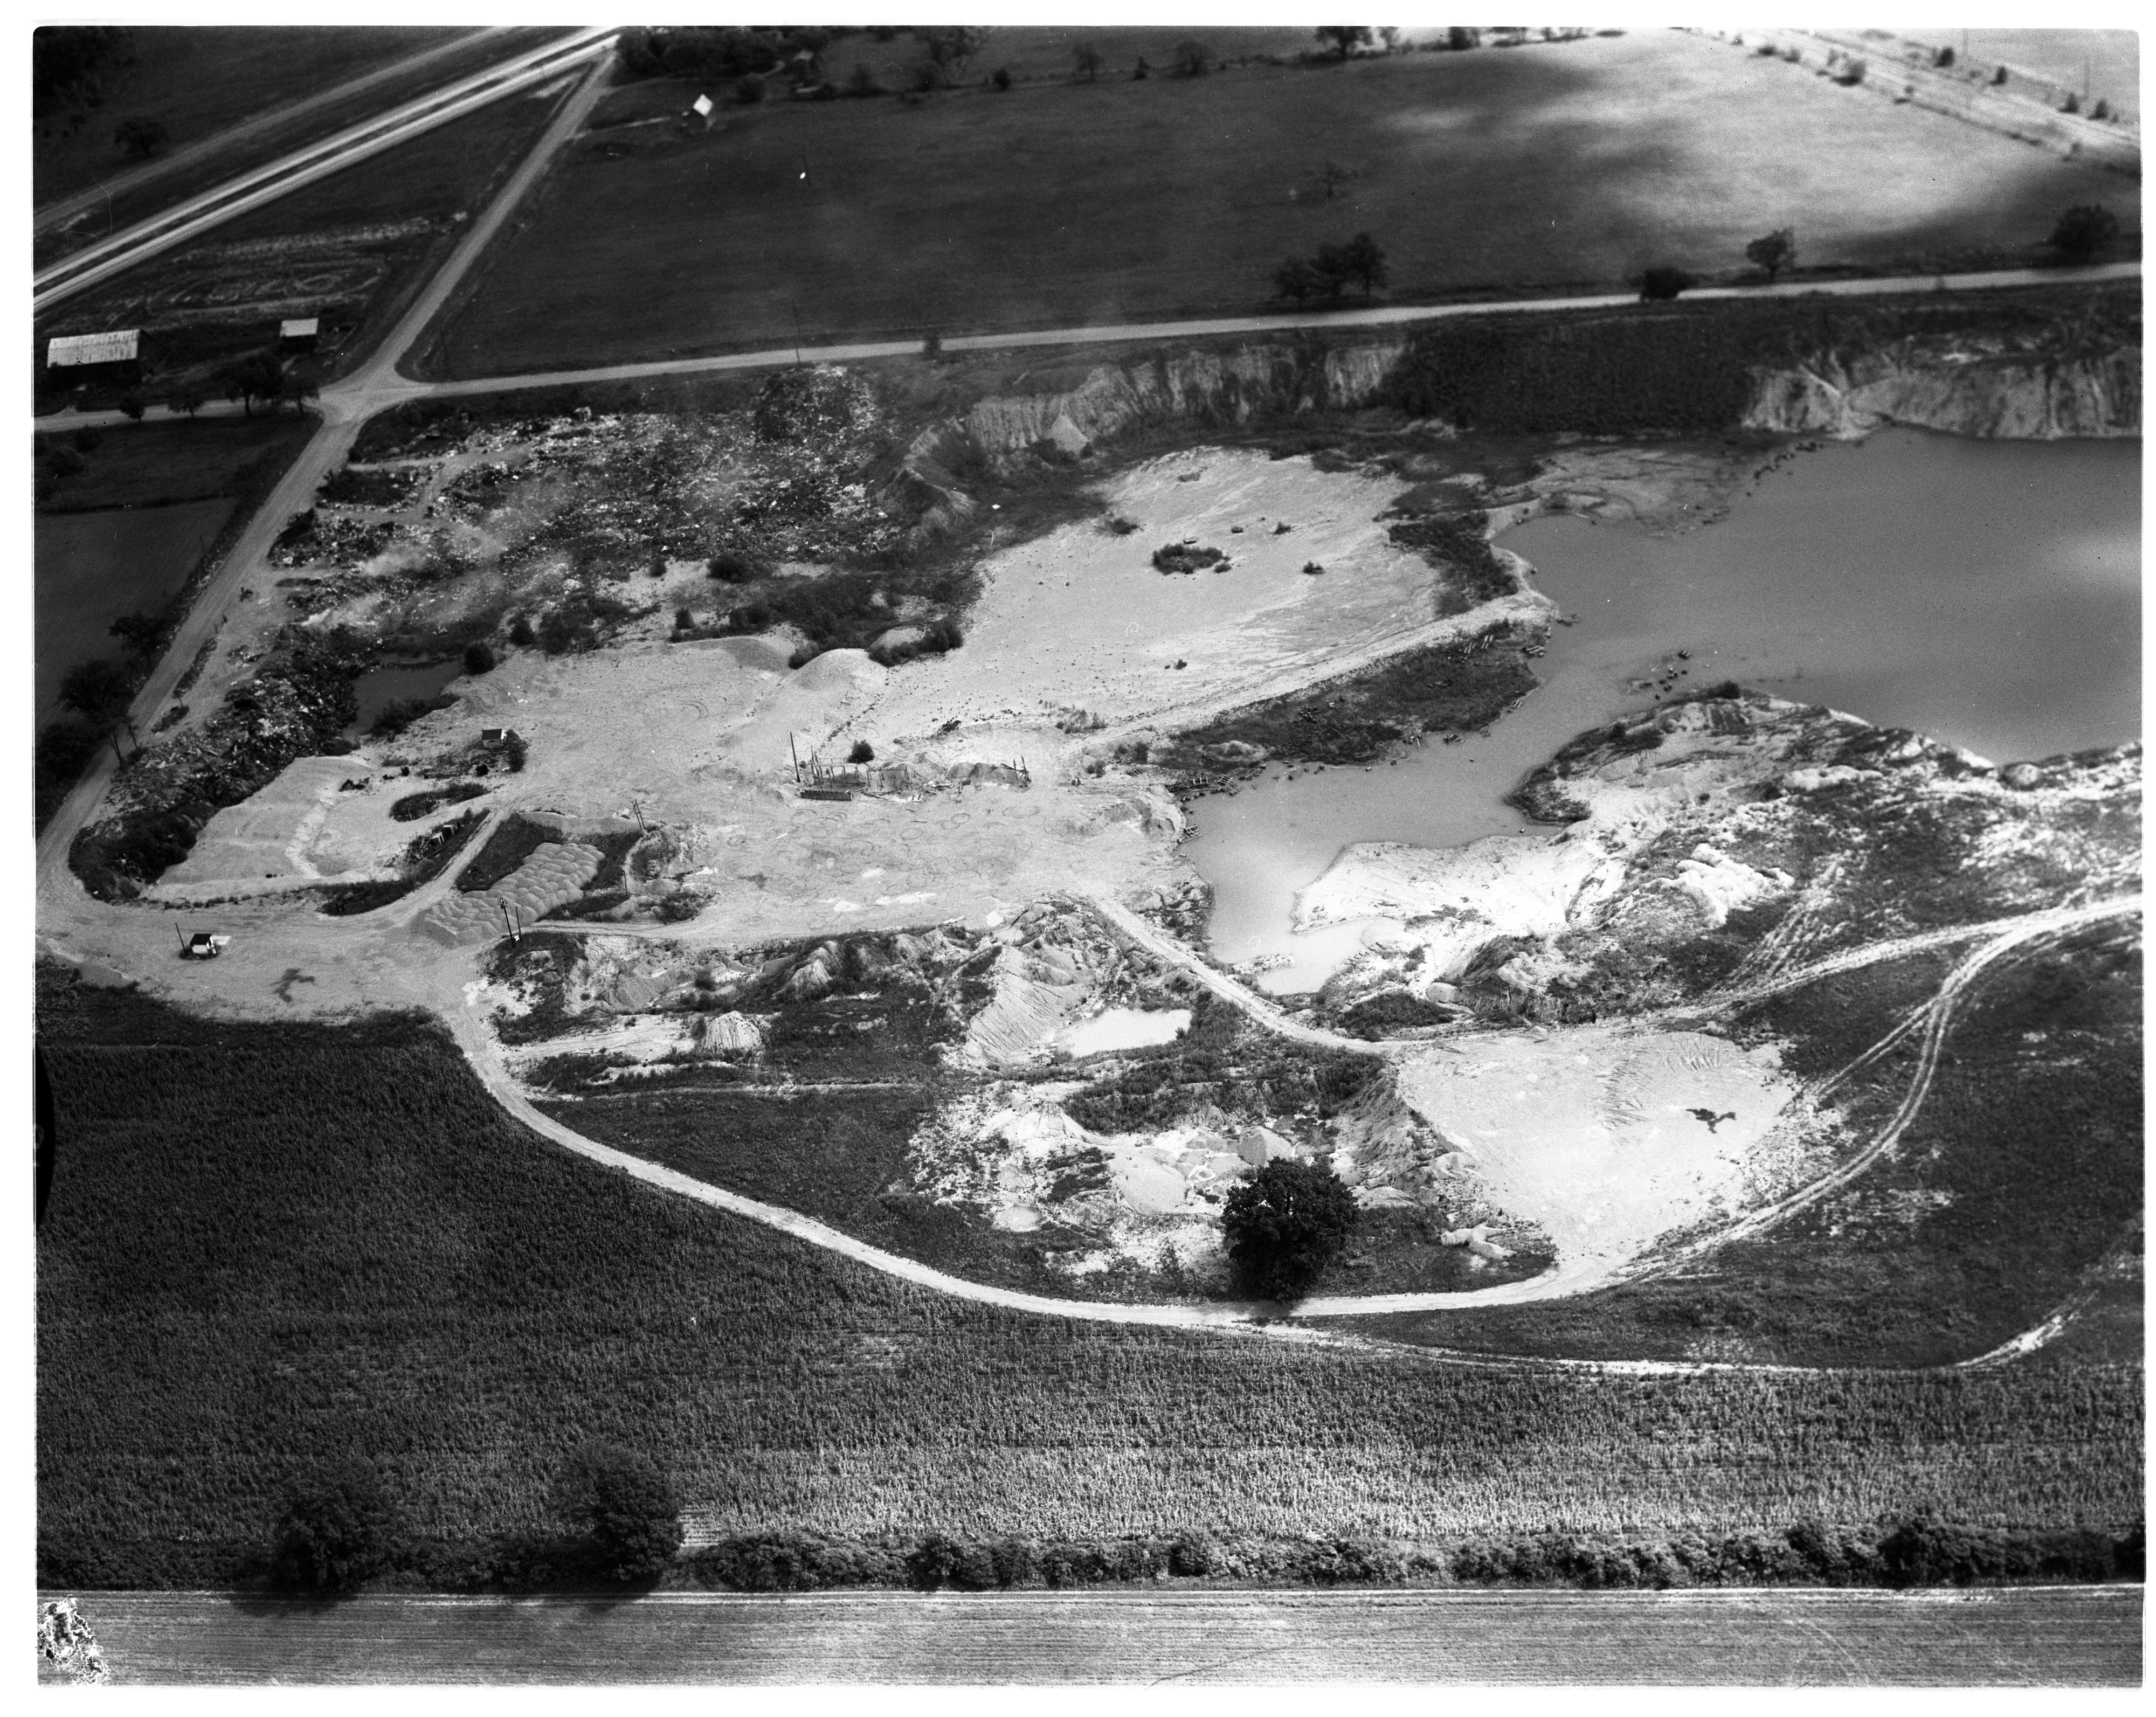 Aerial Photograph of Proposed Landfill, Pittsfield Township, September 1958 image